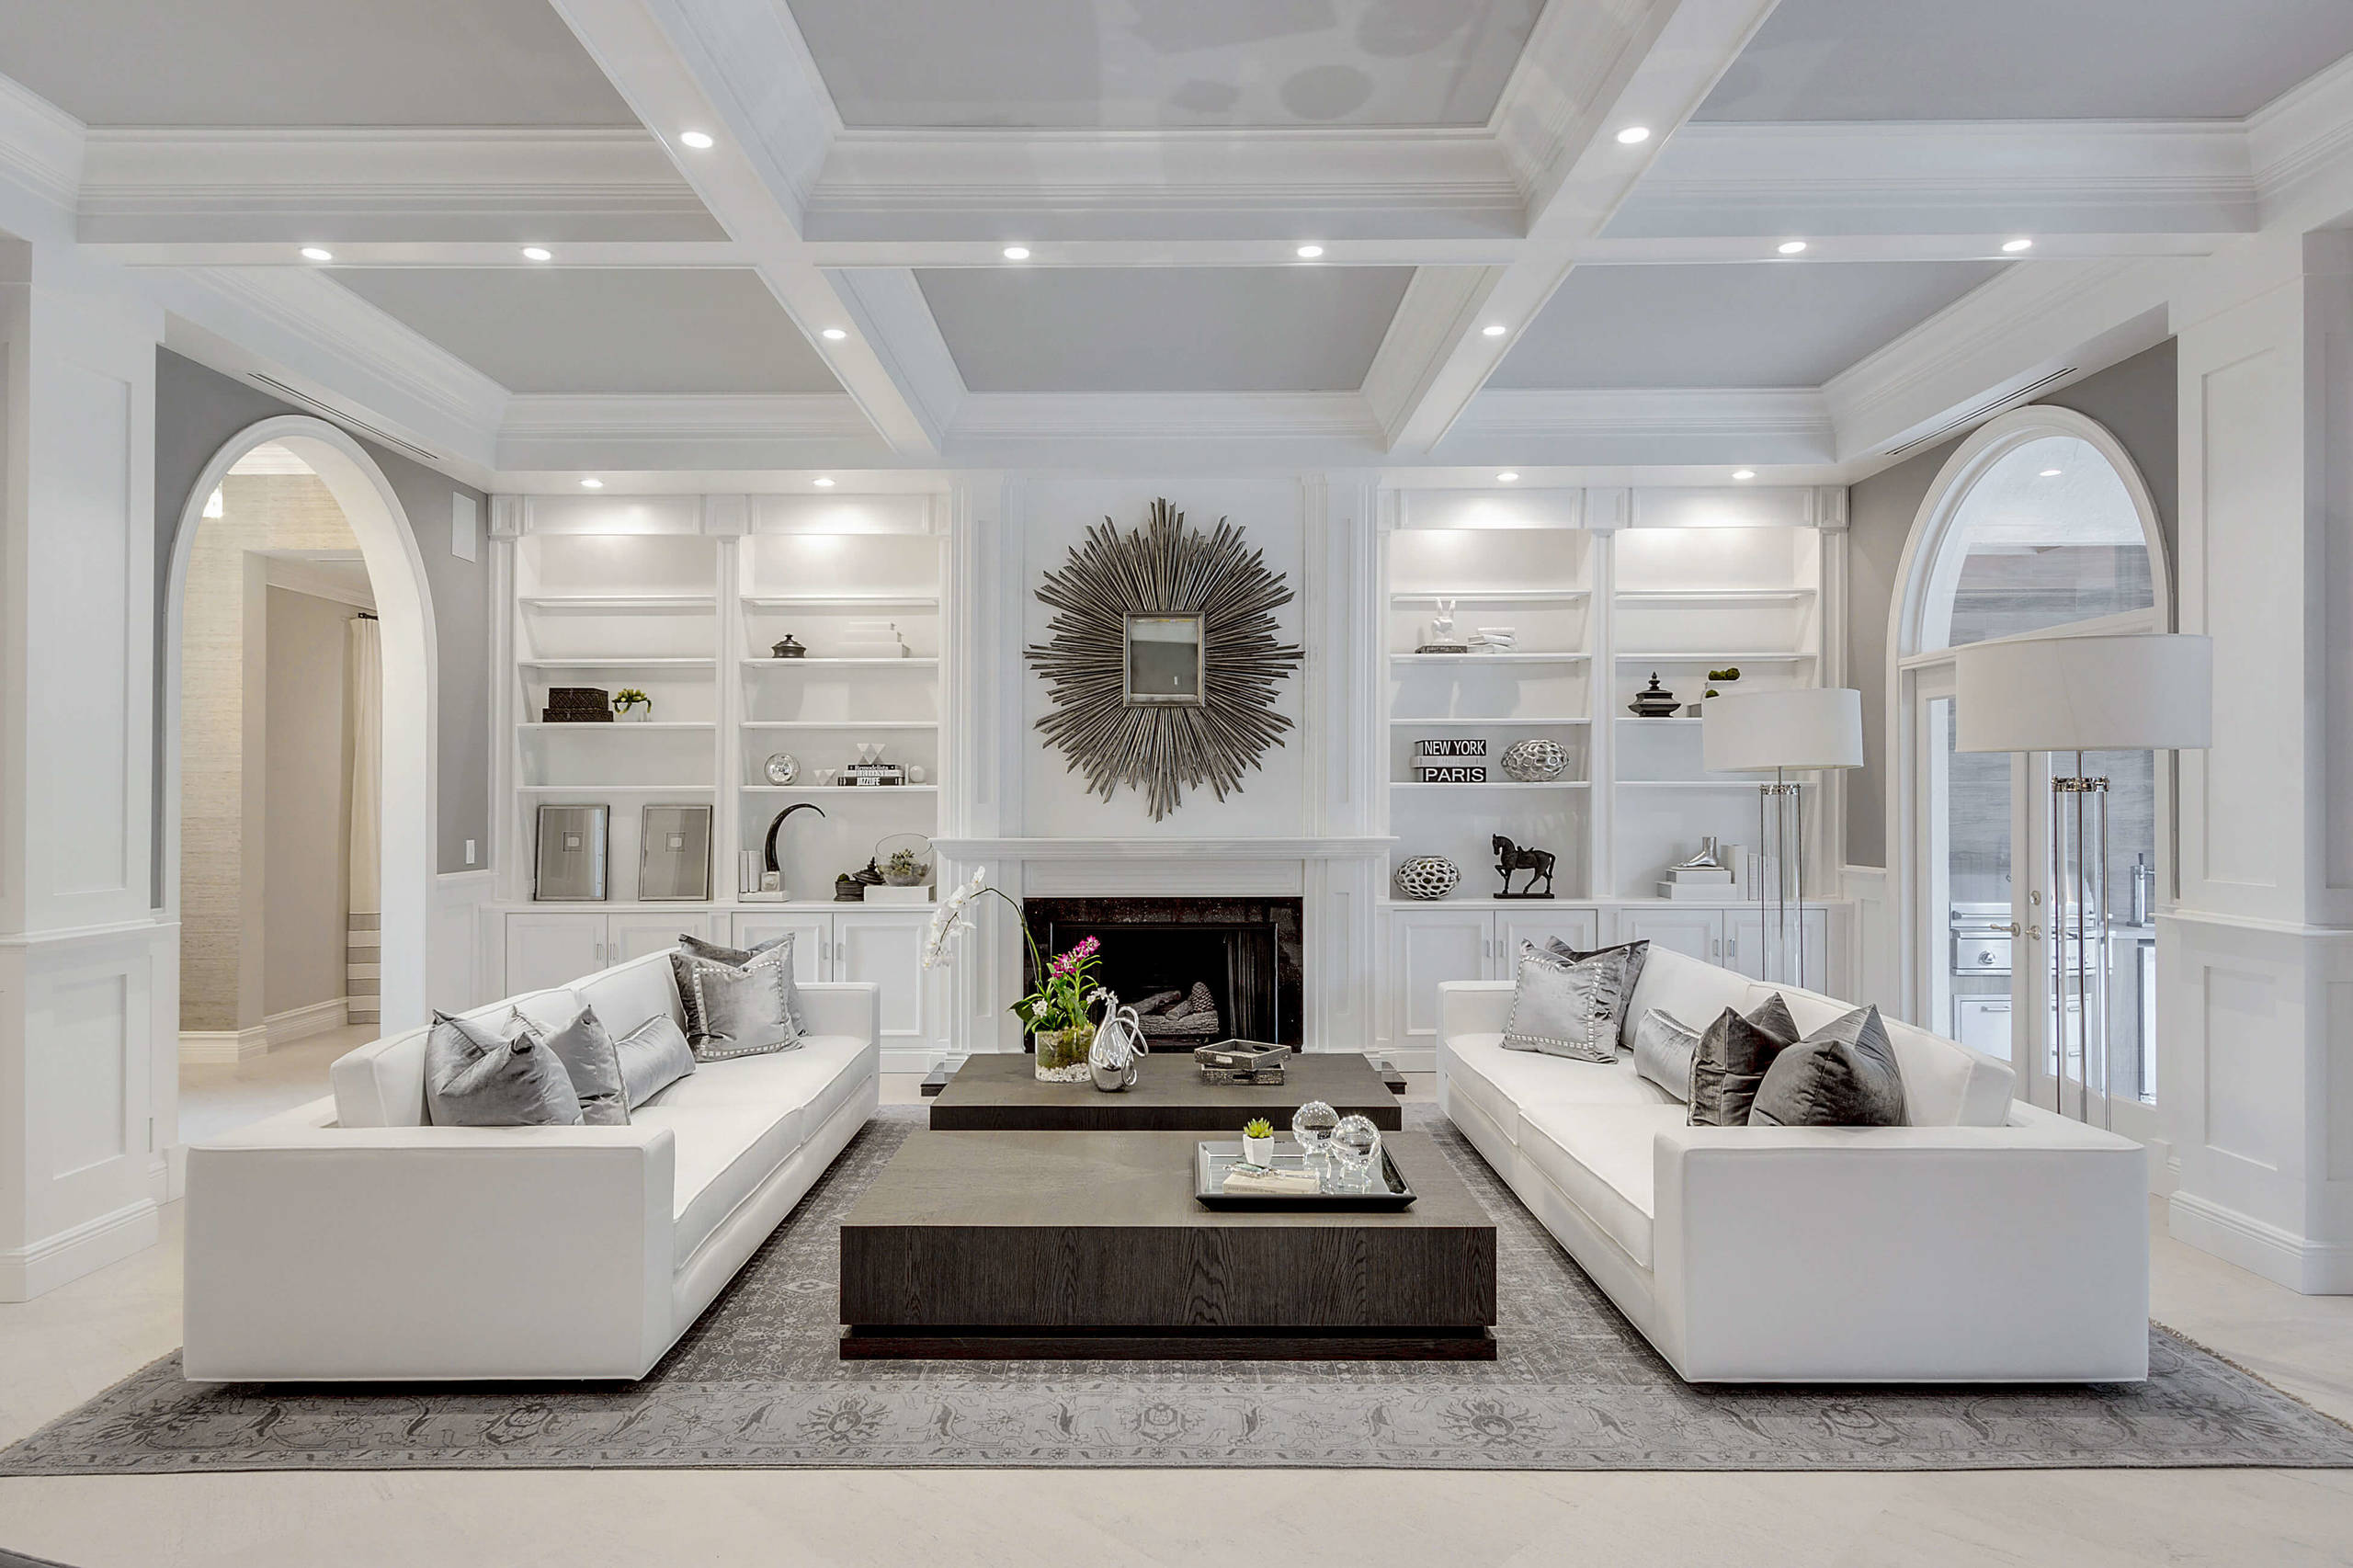 75 Beautiful Small Formal Living Room Pictures & Ideas - January, 2021 | Houzz